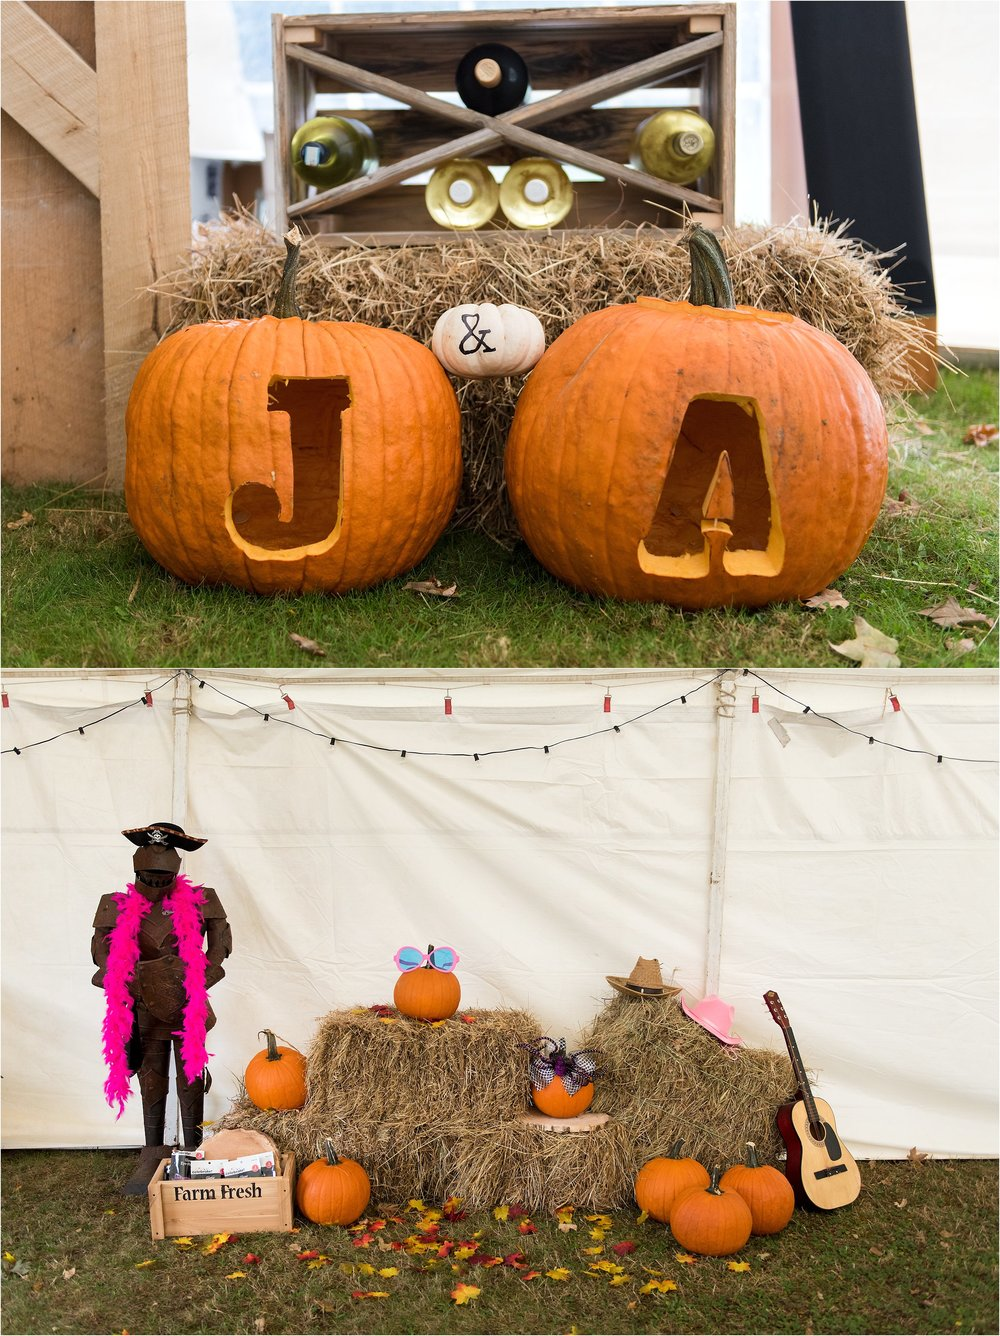 carved pumpkins and hay rustic wedding decor